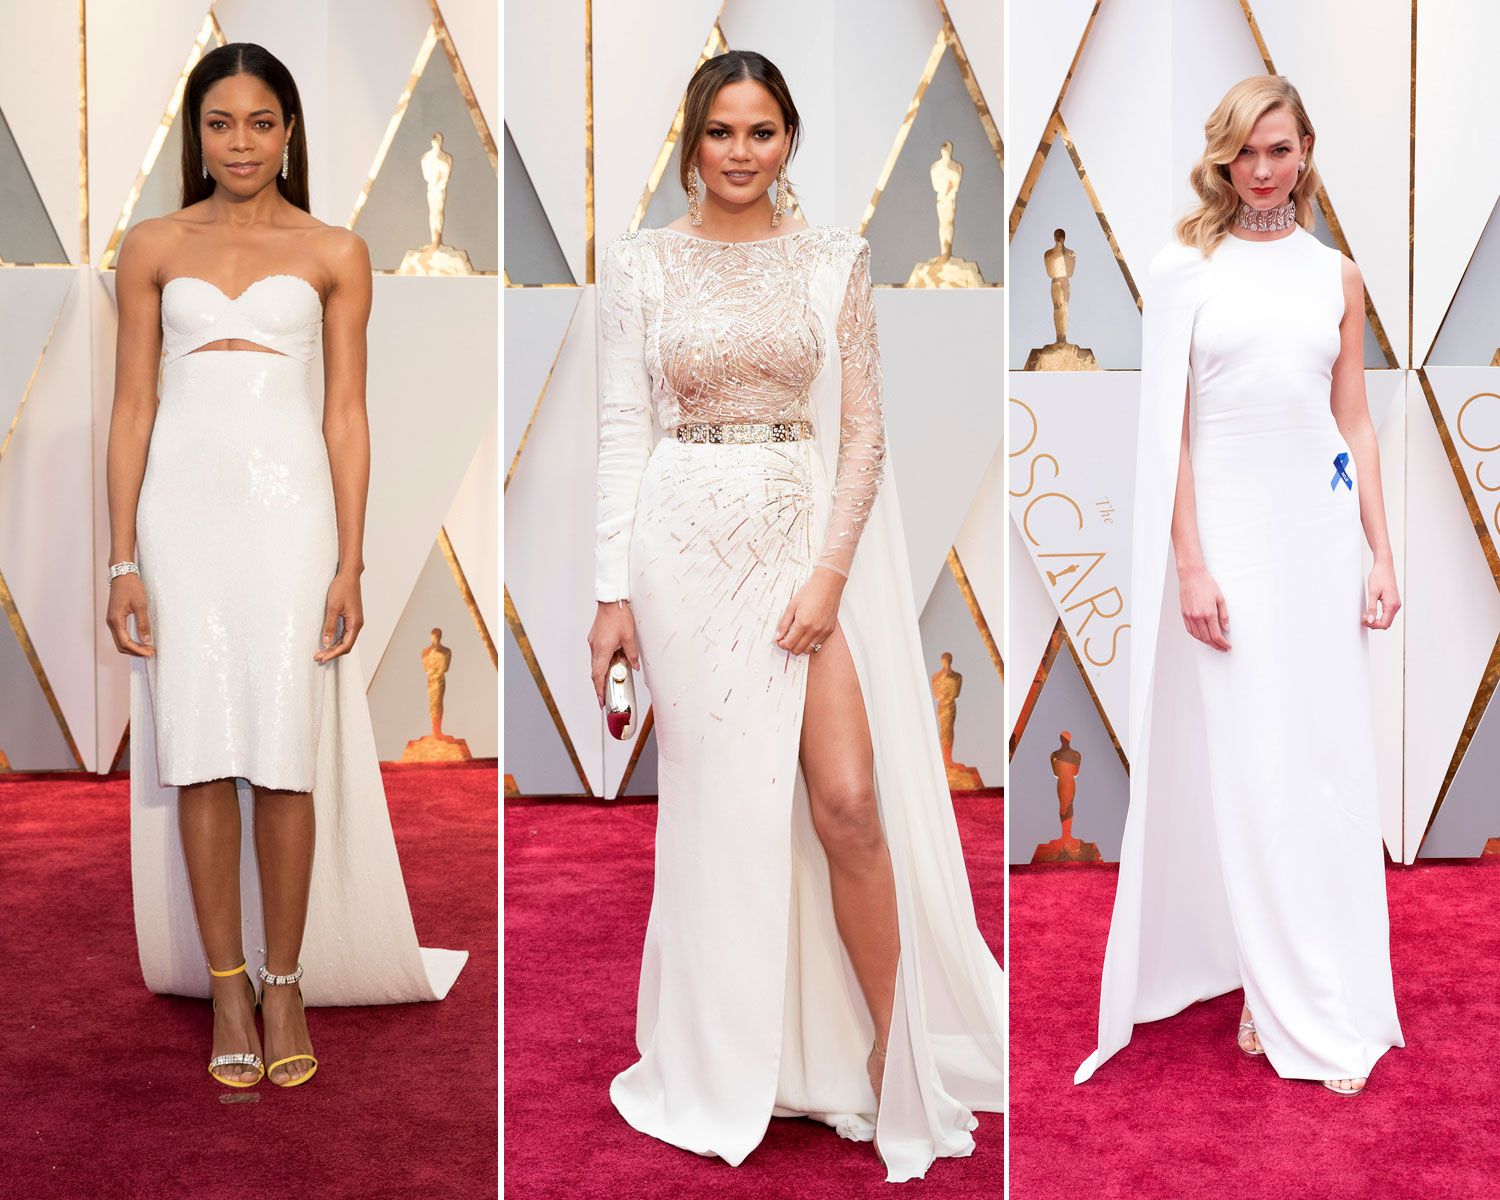 The oscars 2017 red carpet featured so many bridal looks photos - Red carpet oscar dresses ...